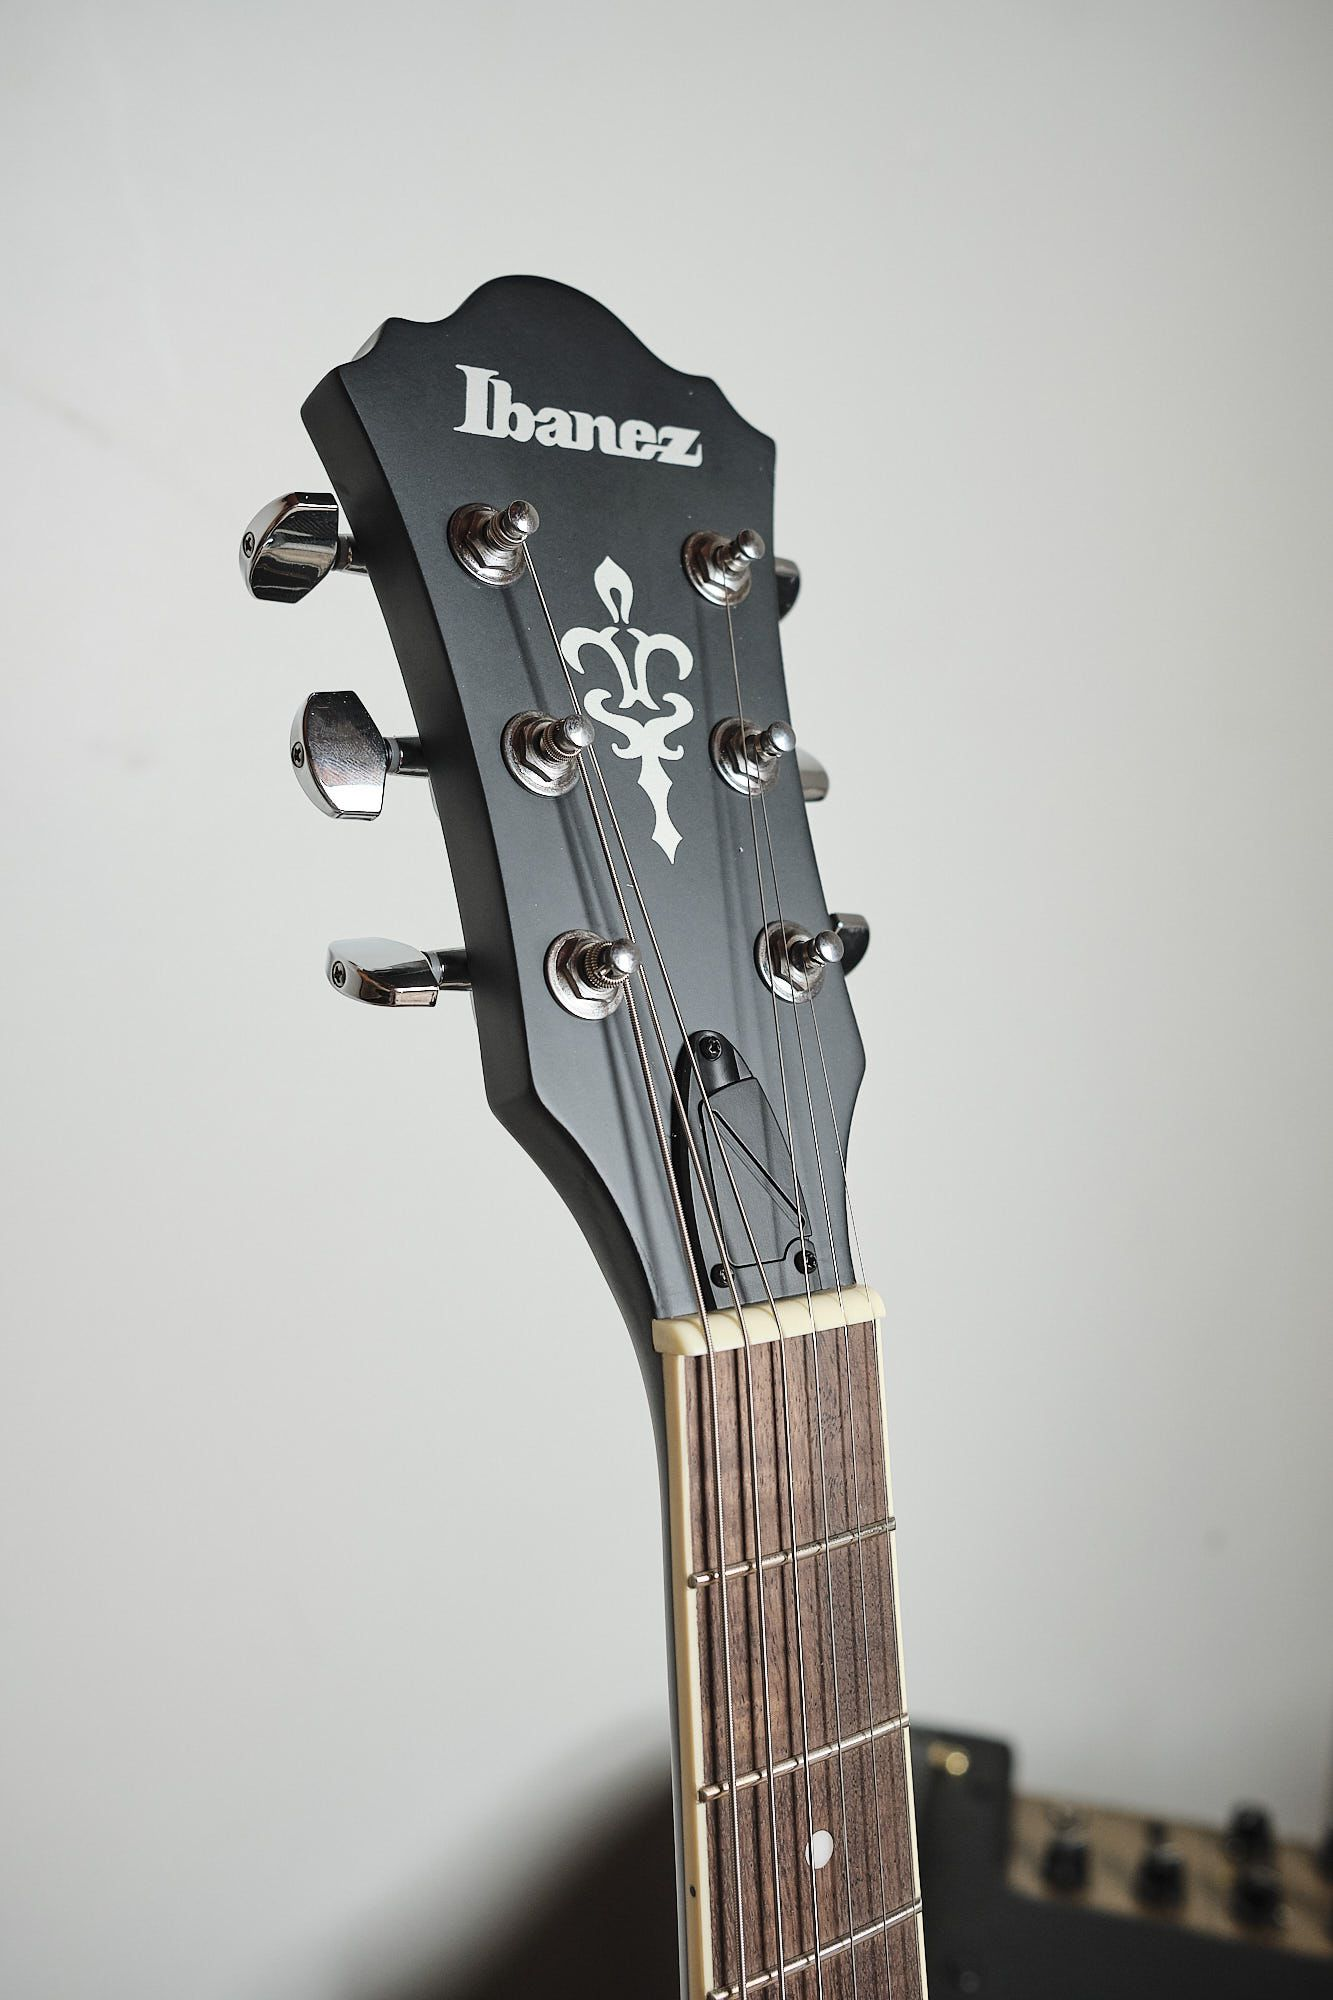 Guitarra Ibanez Semi Acústica Artcore - As 53 Tkf